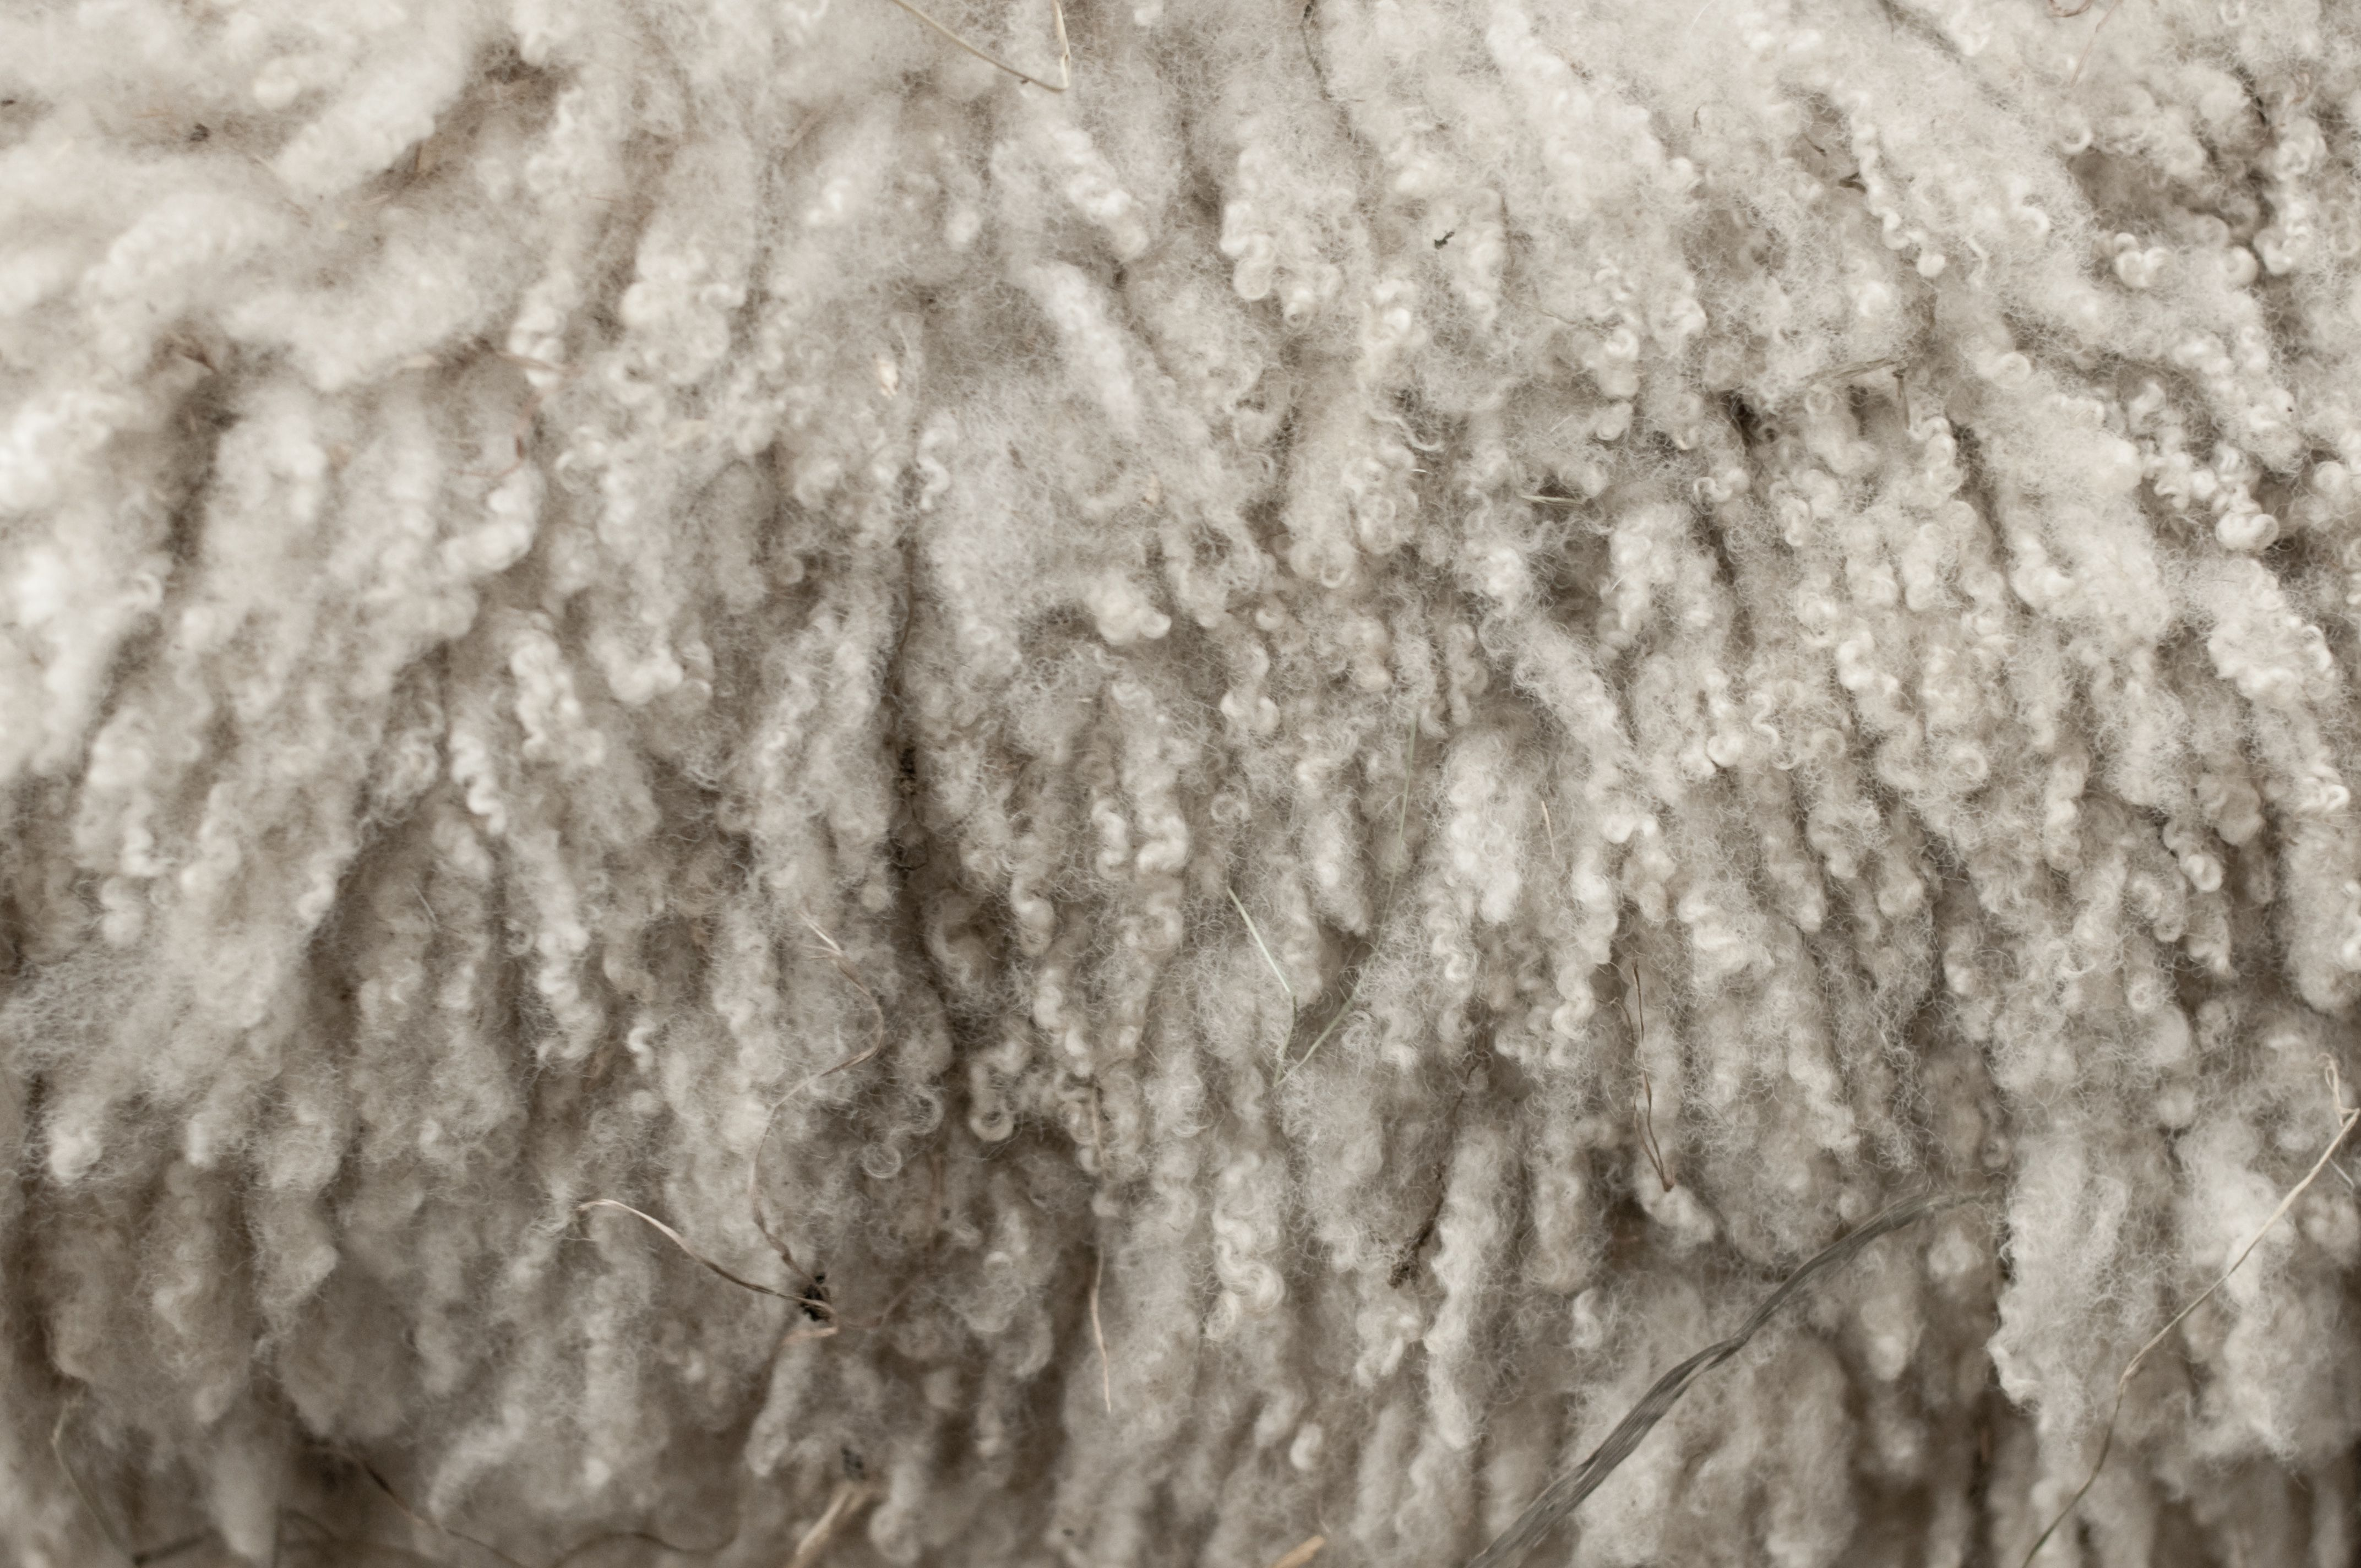 Facts about wool for wool week | Technical textiles, Fabrics and ...